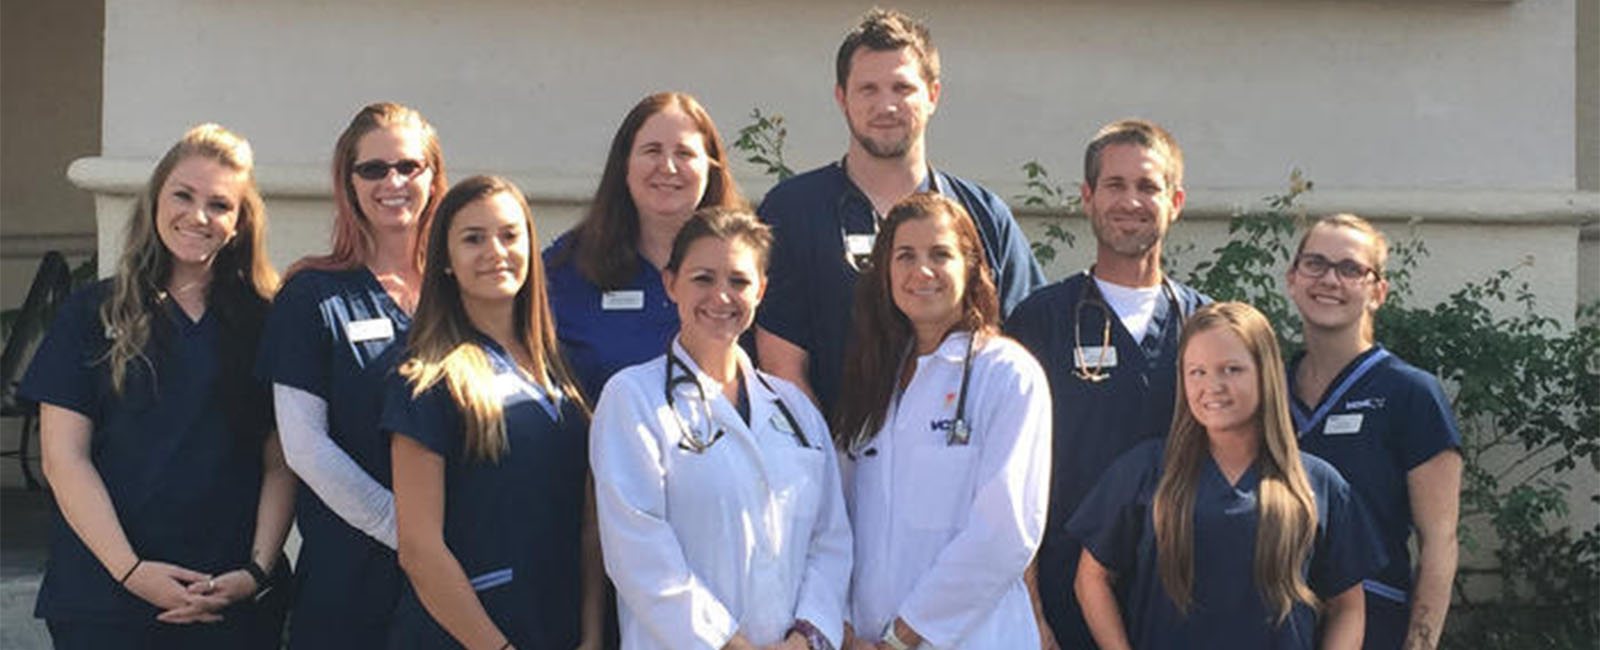 Homepage Team Picture of VCA Mission Viejo Animal Hospital